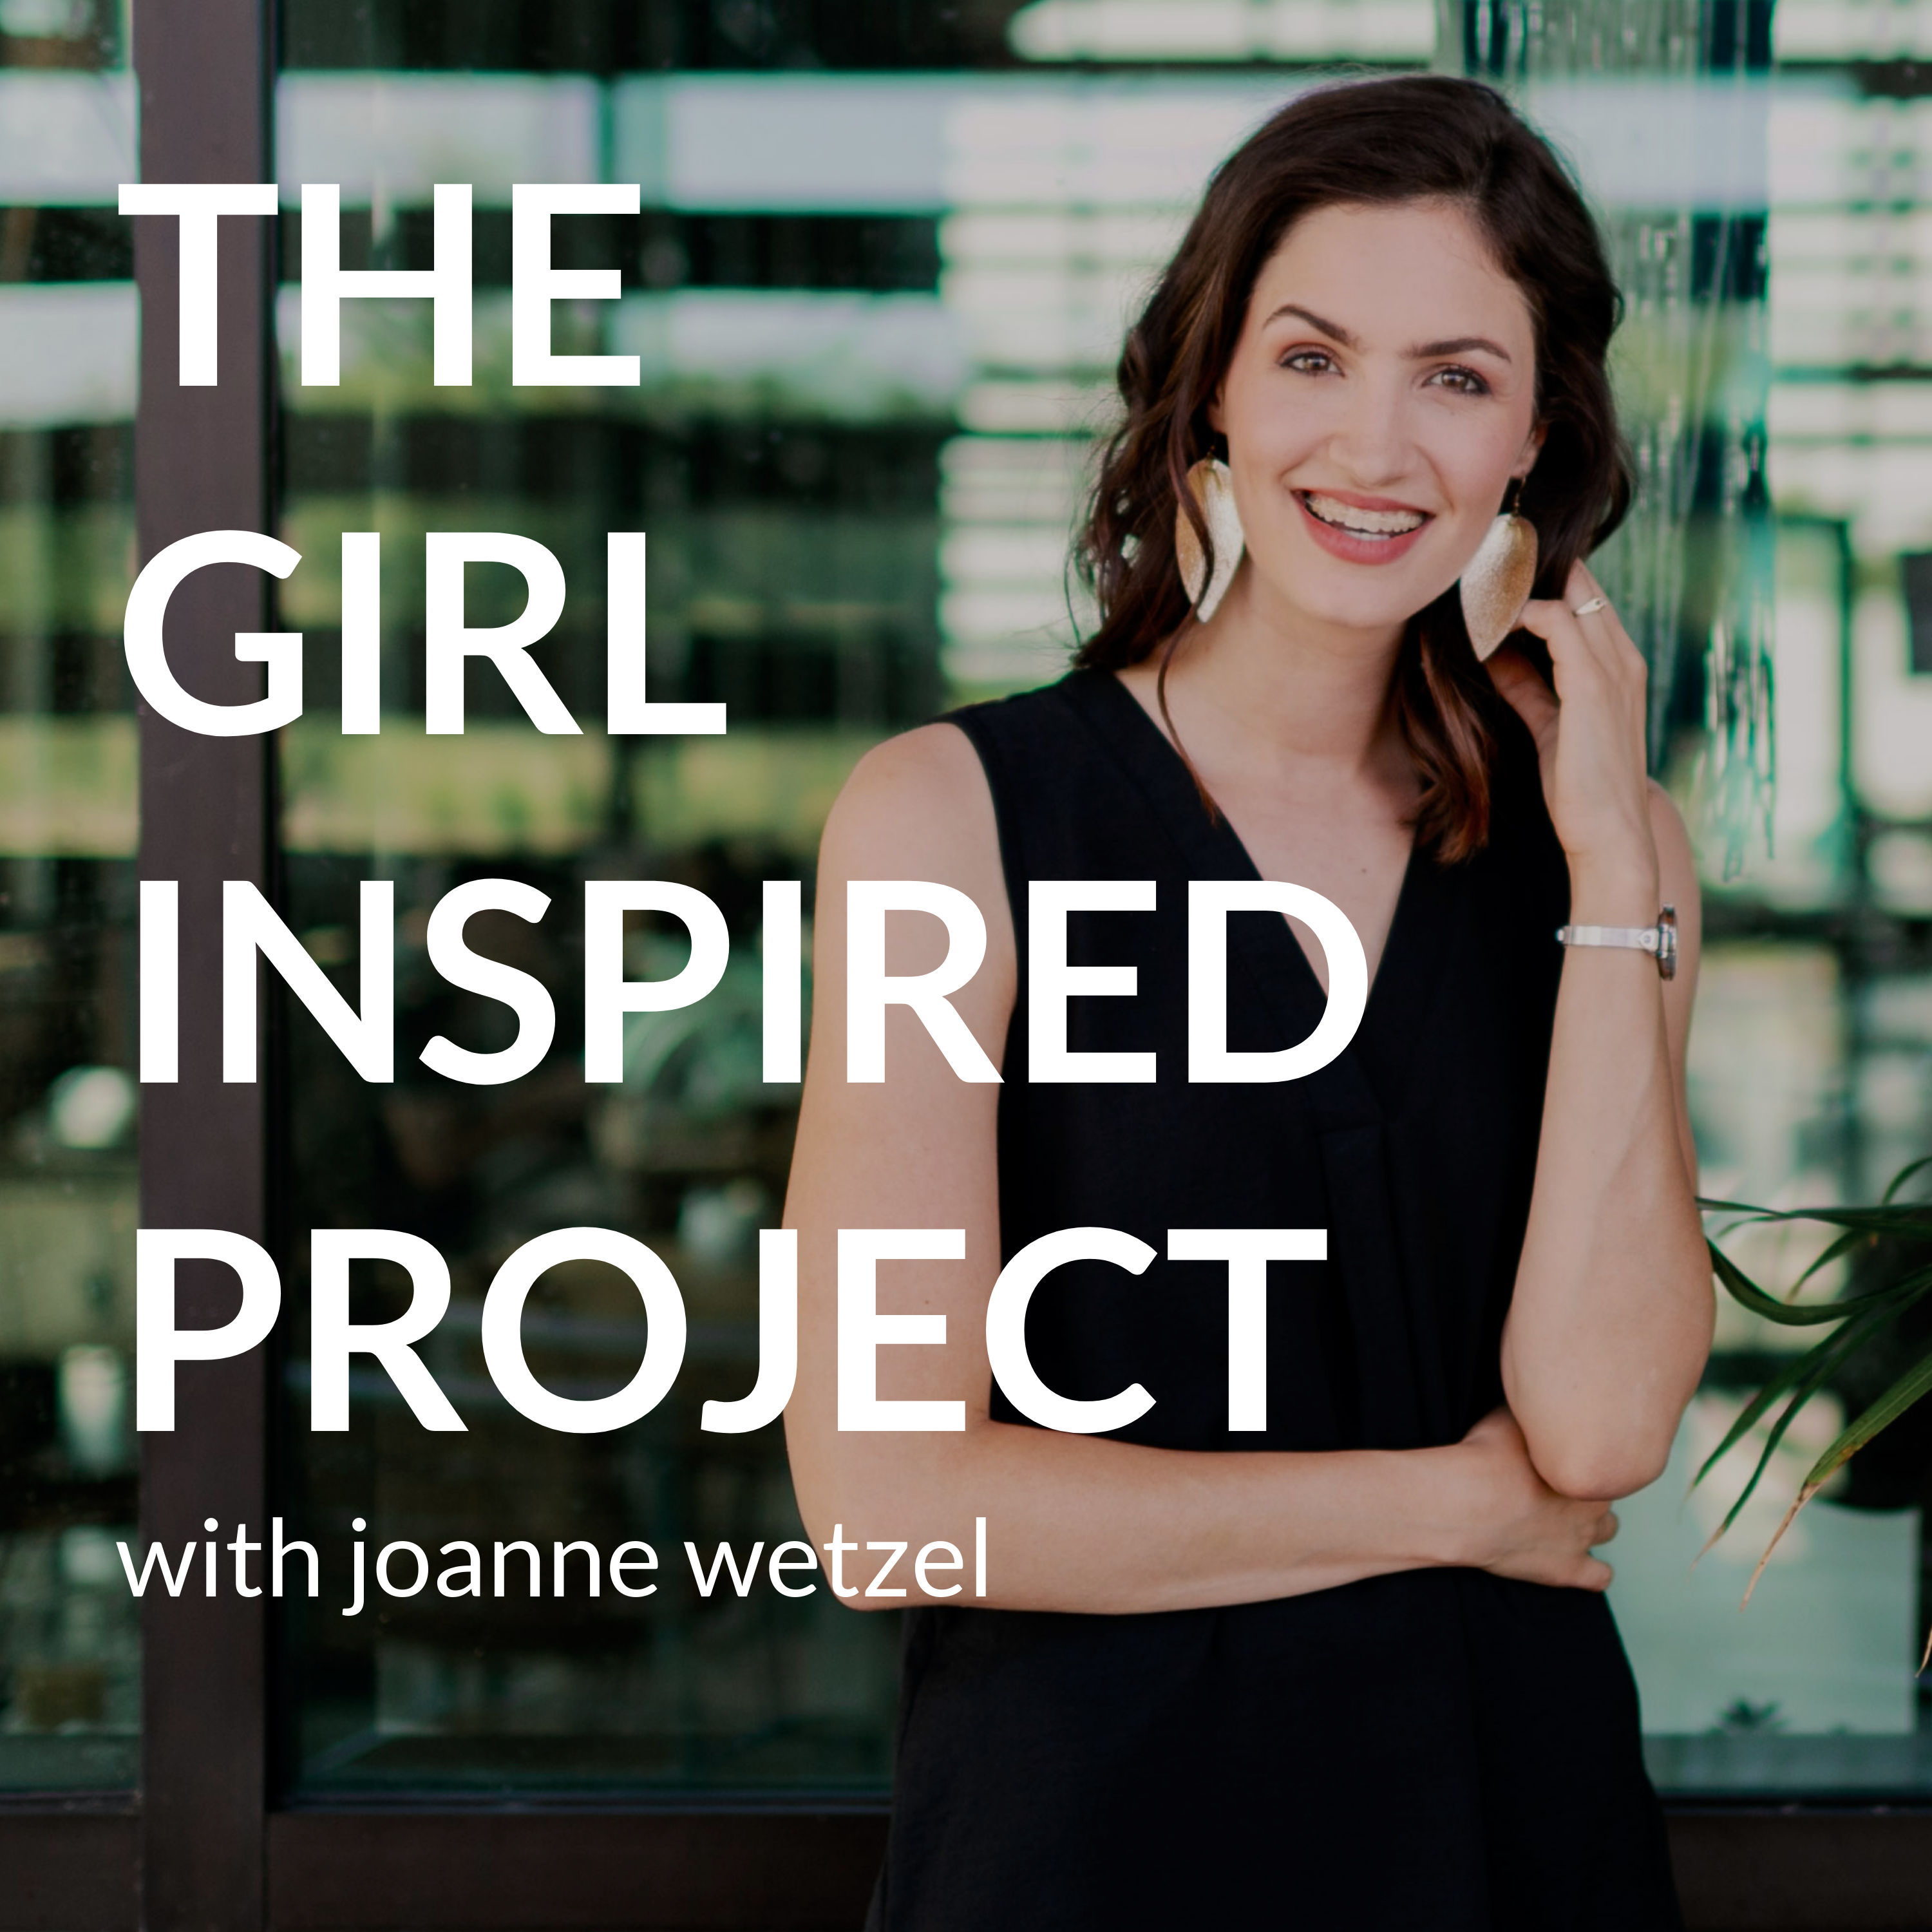 The Girl Inspired Project